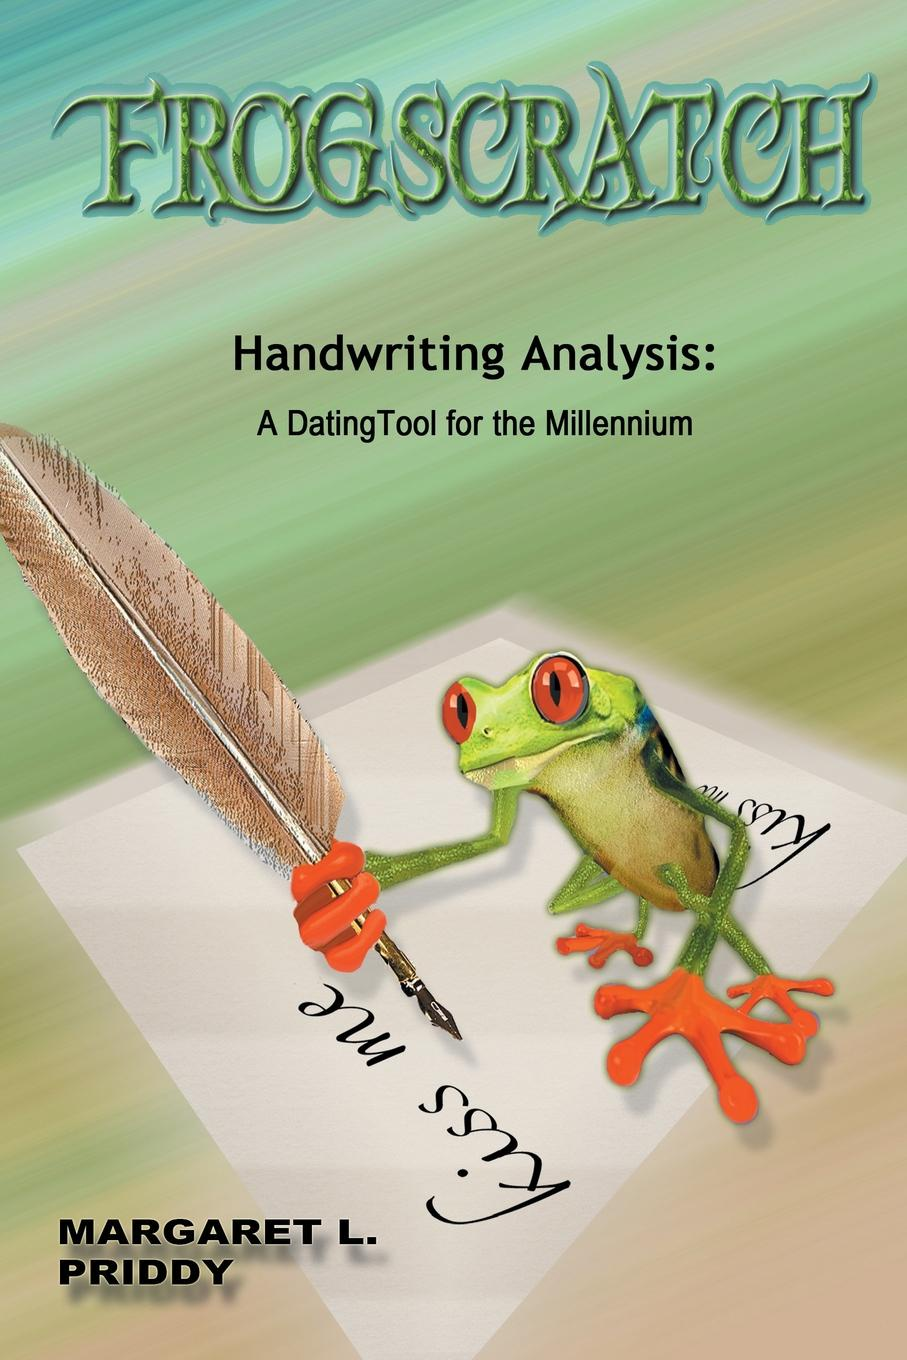 Margaret L. Priddy Frogscratch. Handwriting Analysis: A Dating Tool for the Millennium